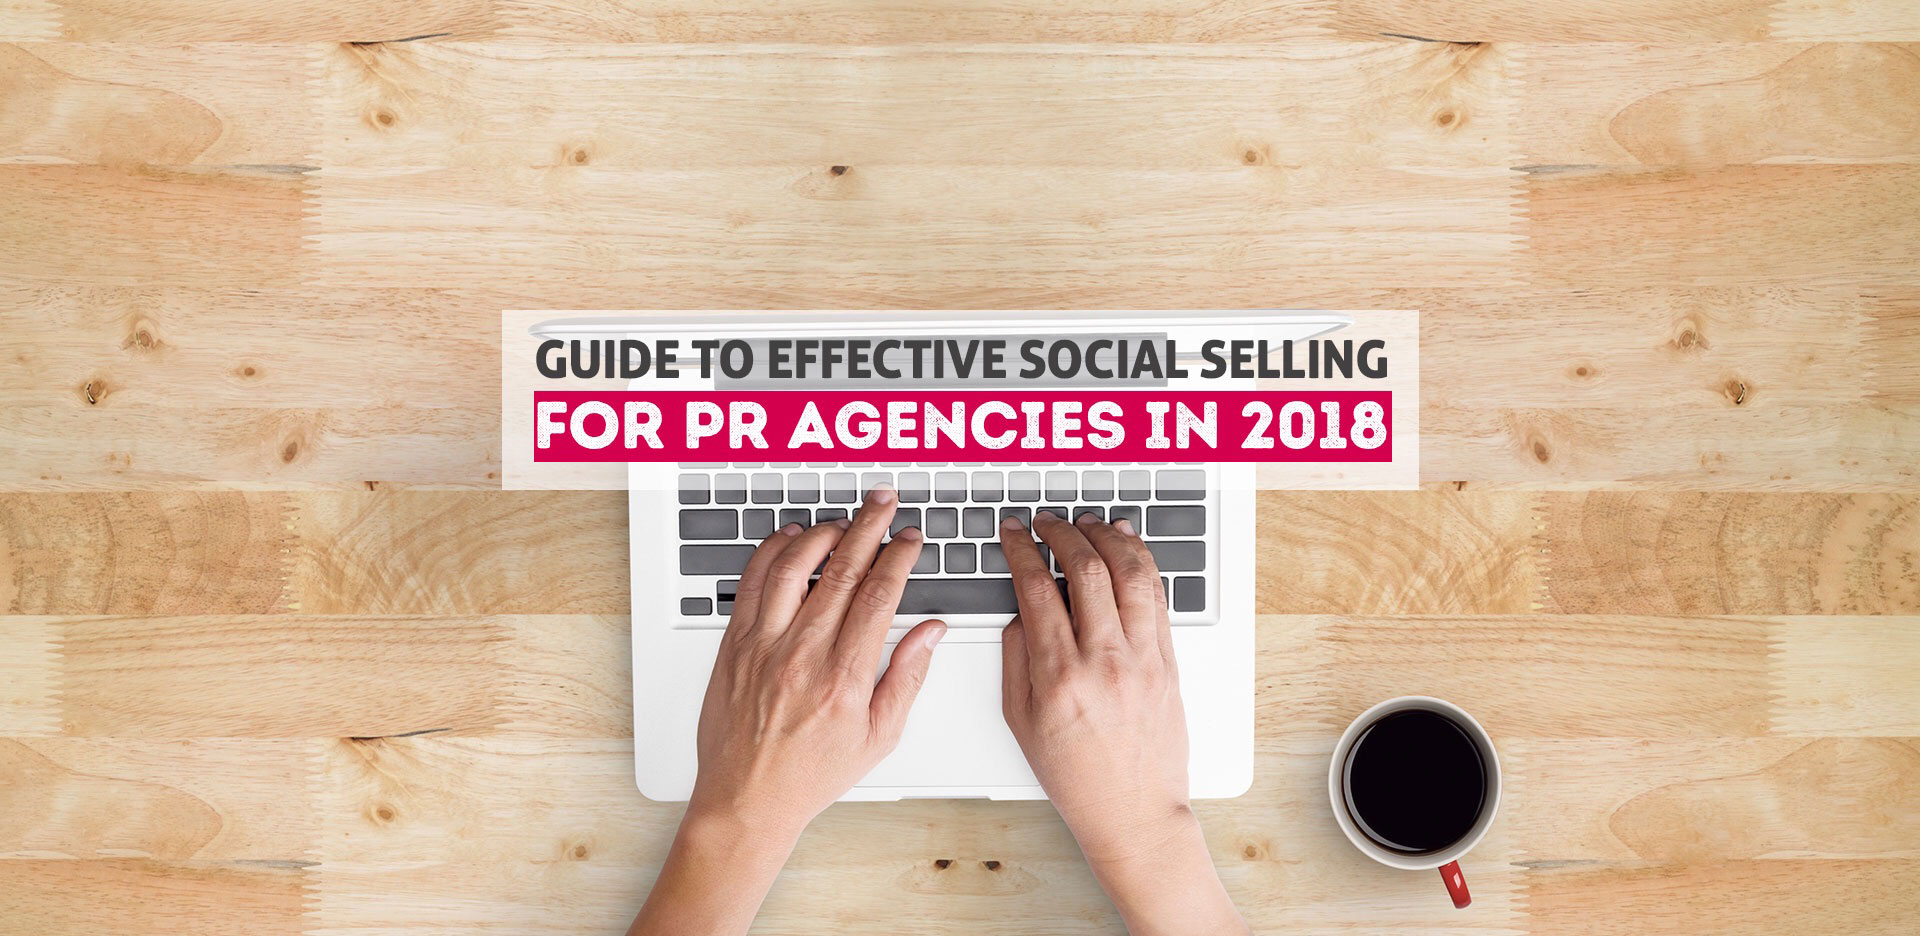 Guide-to-Effective-Social-Selling-For-PR-Agencies-in-2018